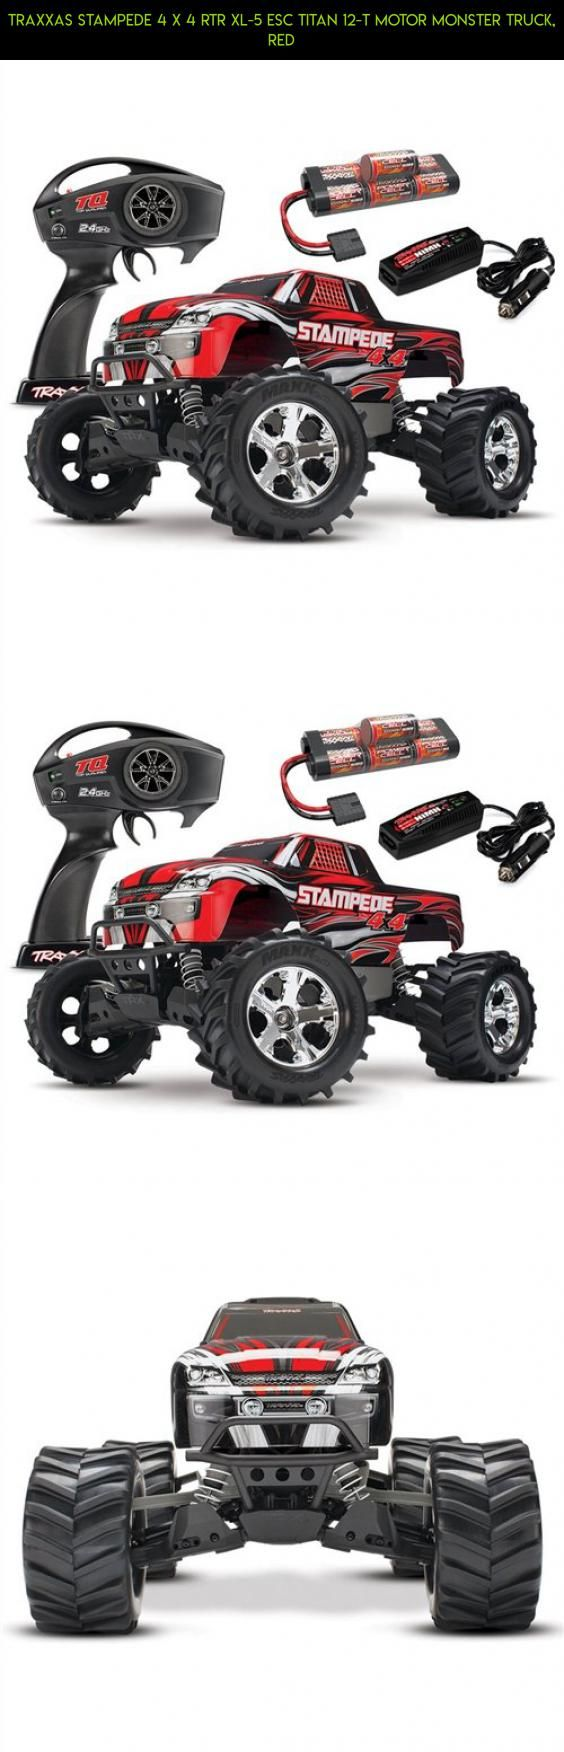 Traxxas Stampede 4 x 4 RTR XL-5 ESC Titan 12-T Motor Monster Truck, Red #drone #kit #traxxas #fpv #technology #camera #racing #plans #kit #shopping #gadgets #parts #products #tech